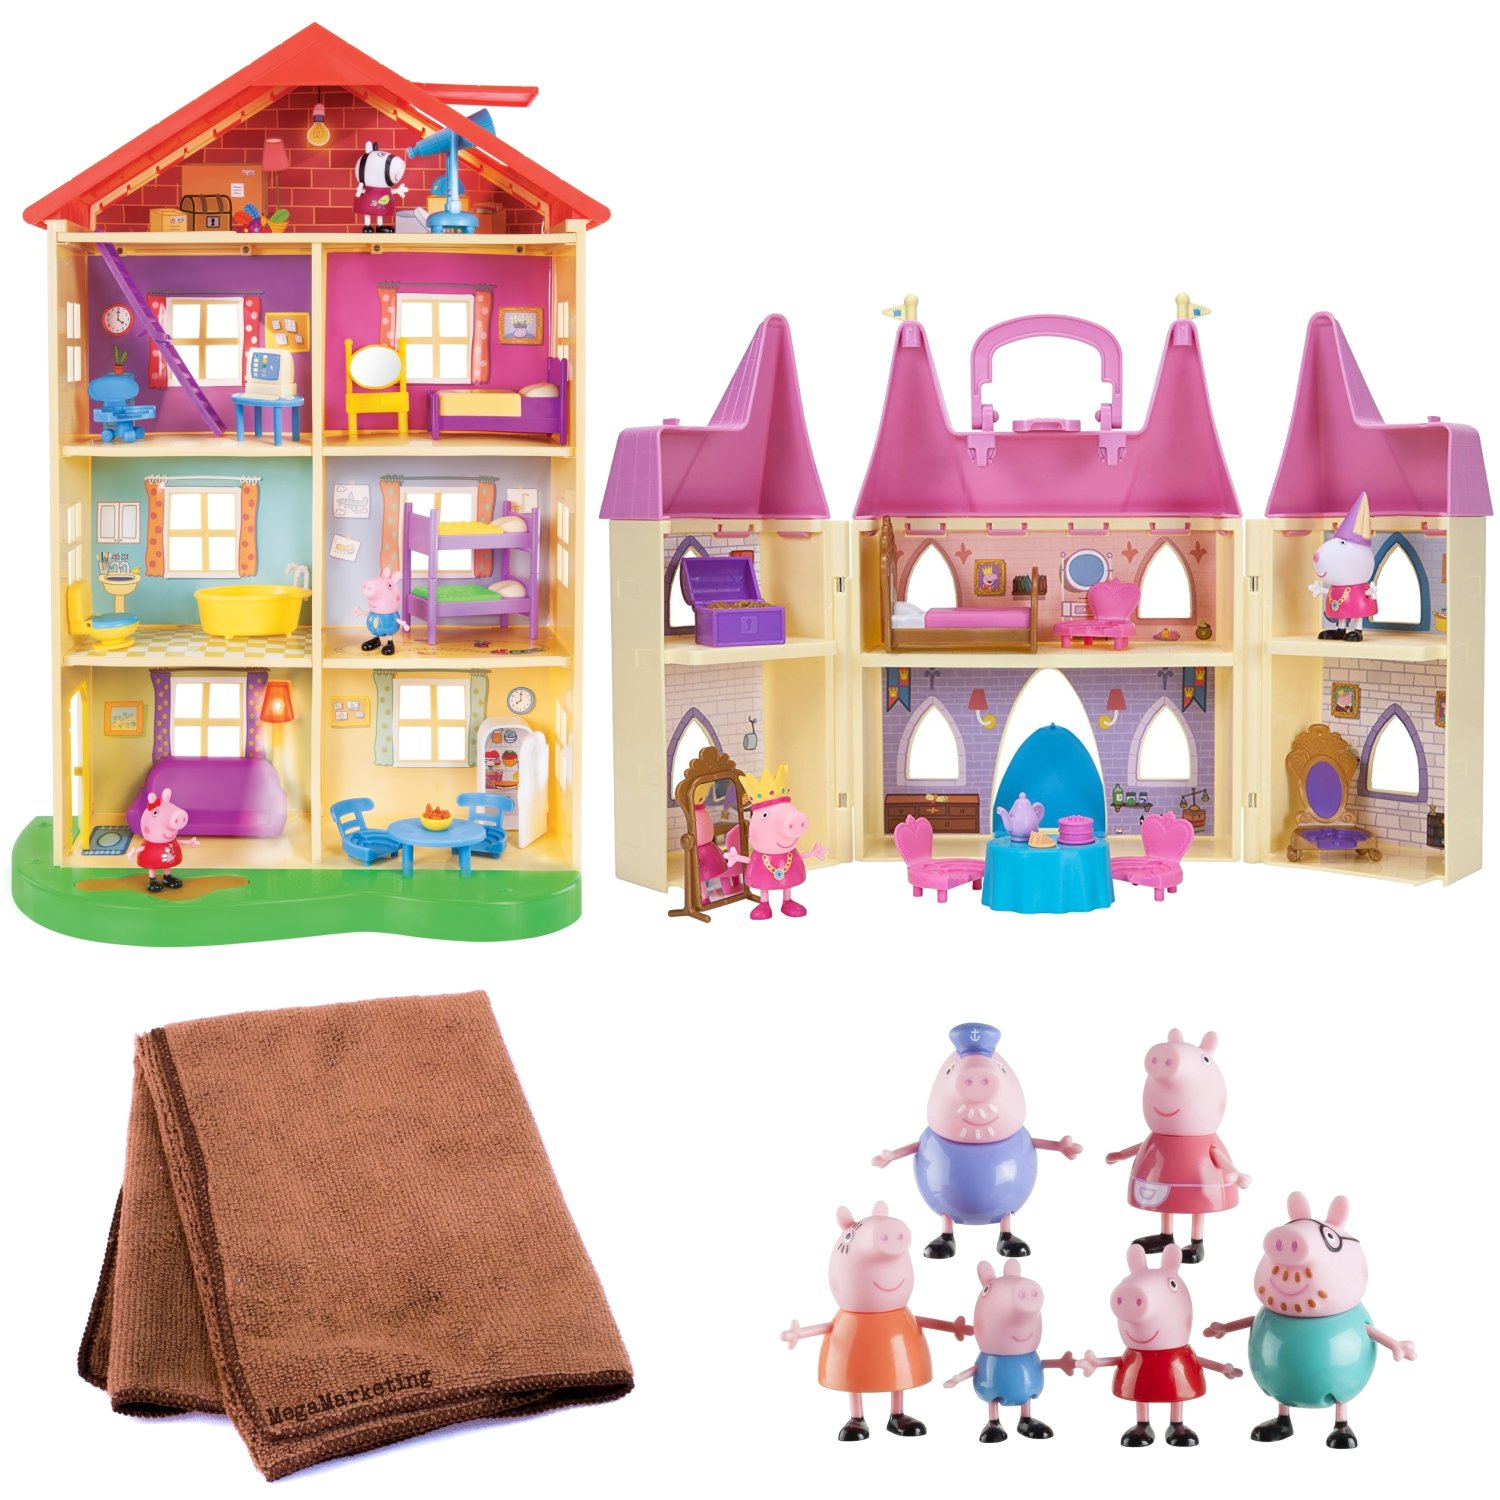 Peppa Pig Princess Castle Playset, Peppa Pig Light and Sounds Family Home, and 6-Piece Peppa Pig Family Figures, Bundle with Cleaning Cloth by Péppa Pig